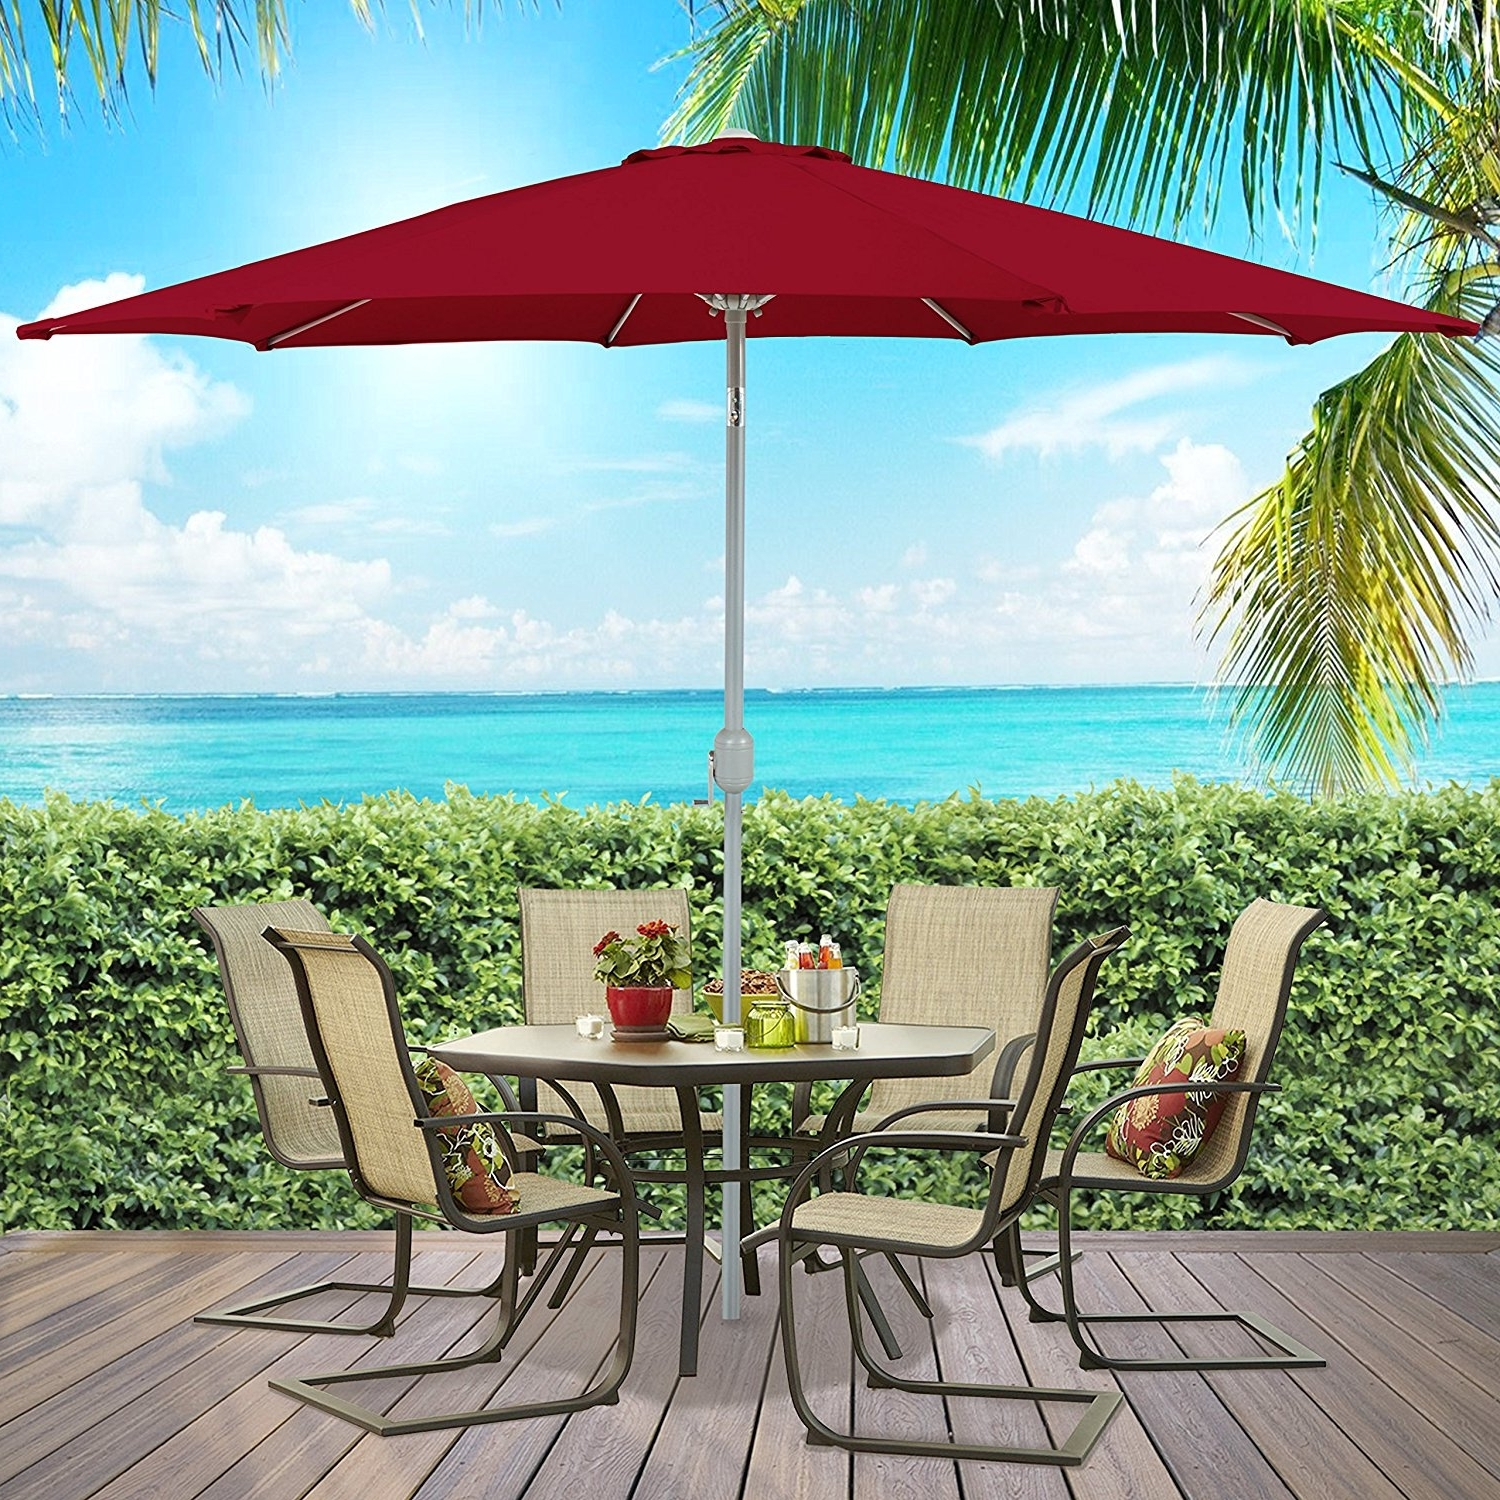 Well Liked Ktaxon 9 Ft Outdoor Patio Yard Umbrella Aluminum Beach Sunshade Pertaining To Walmart Umbrellas Patio (View 15 of 20)